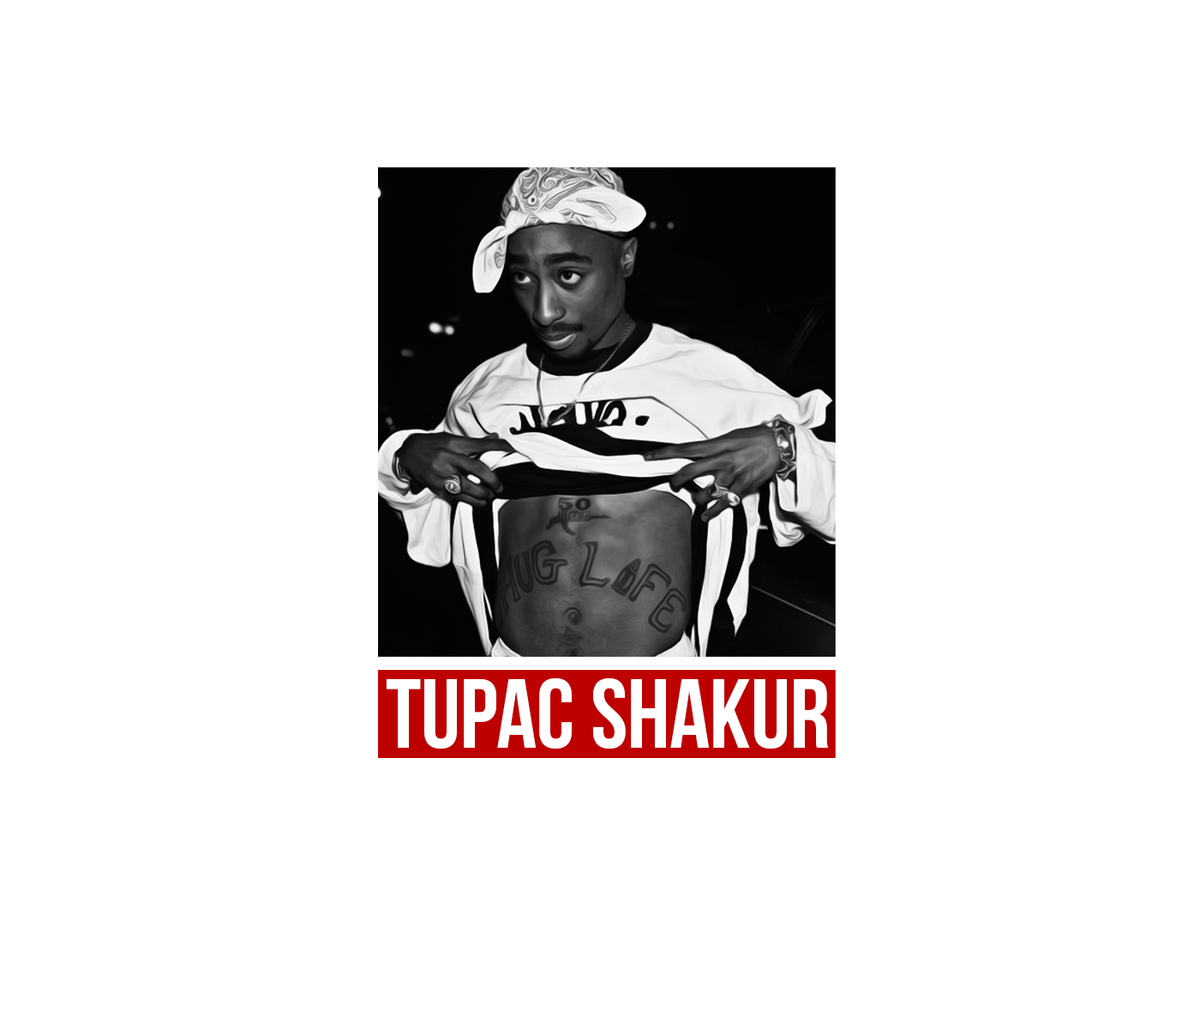 #TupacShakur Latest News Trends Updates Images - NYRomaNSL